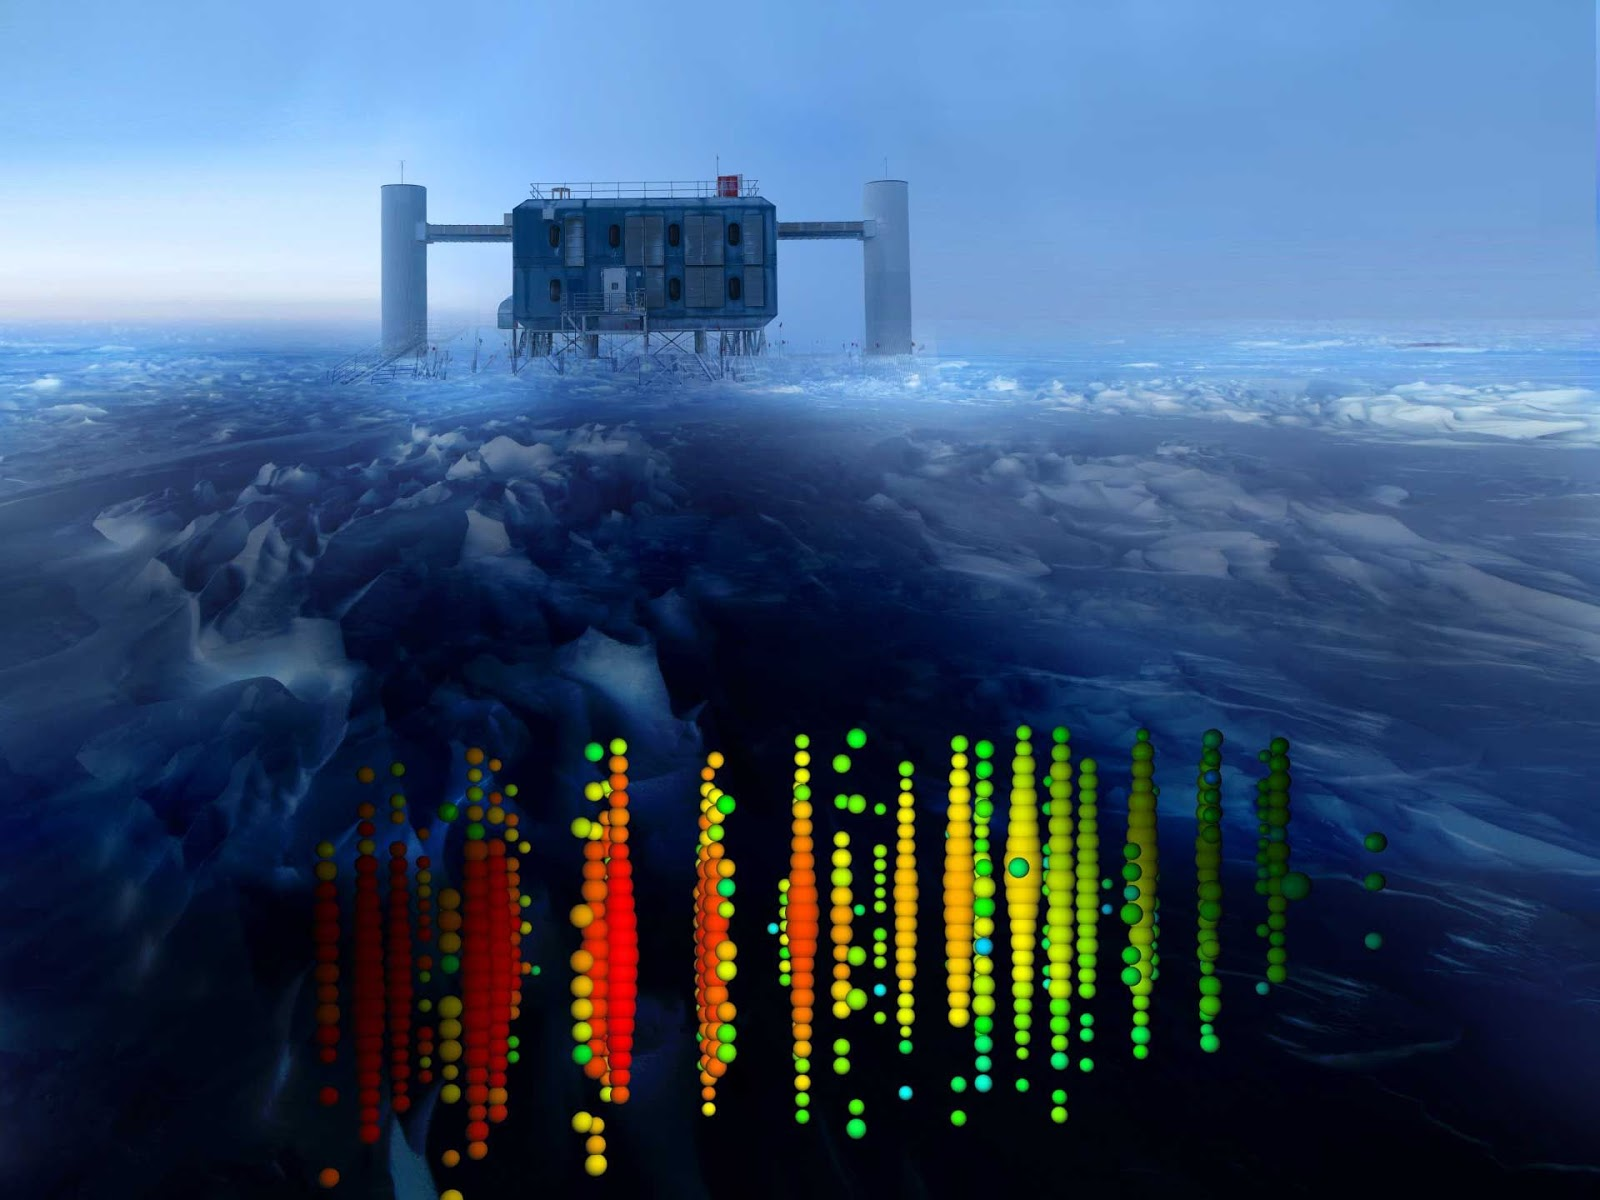 Discovered by scientists neutrinos confirm the general ...Icecube Neutrino Observatory July